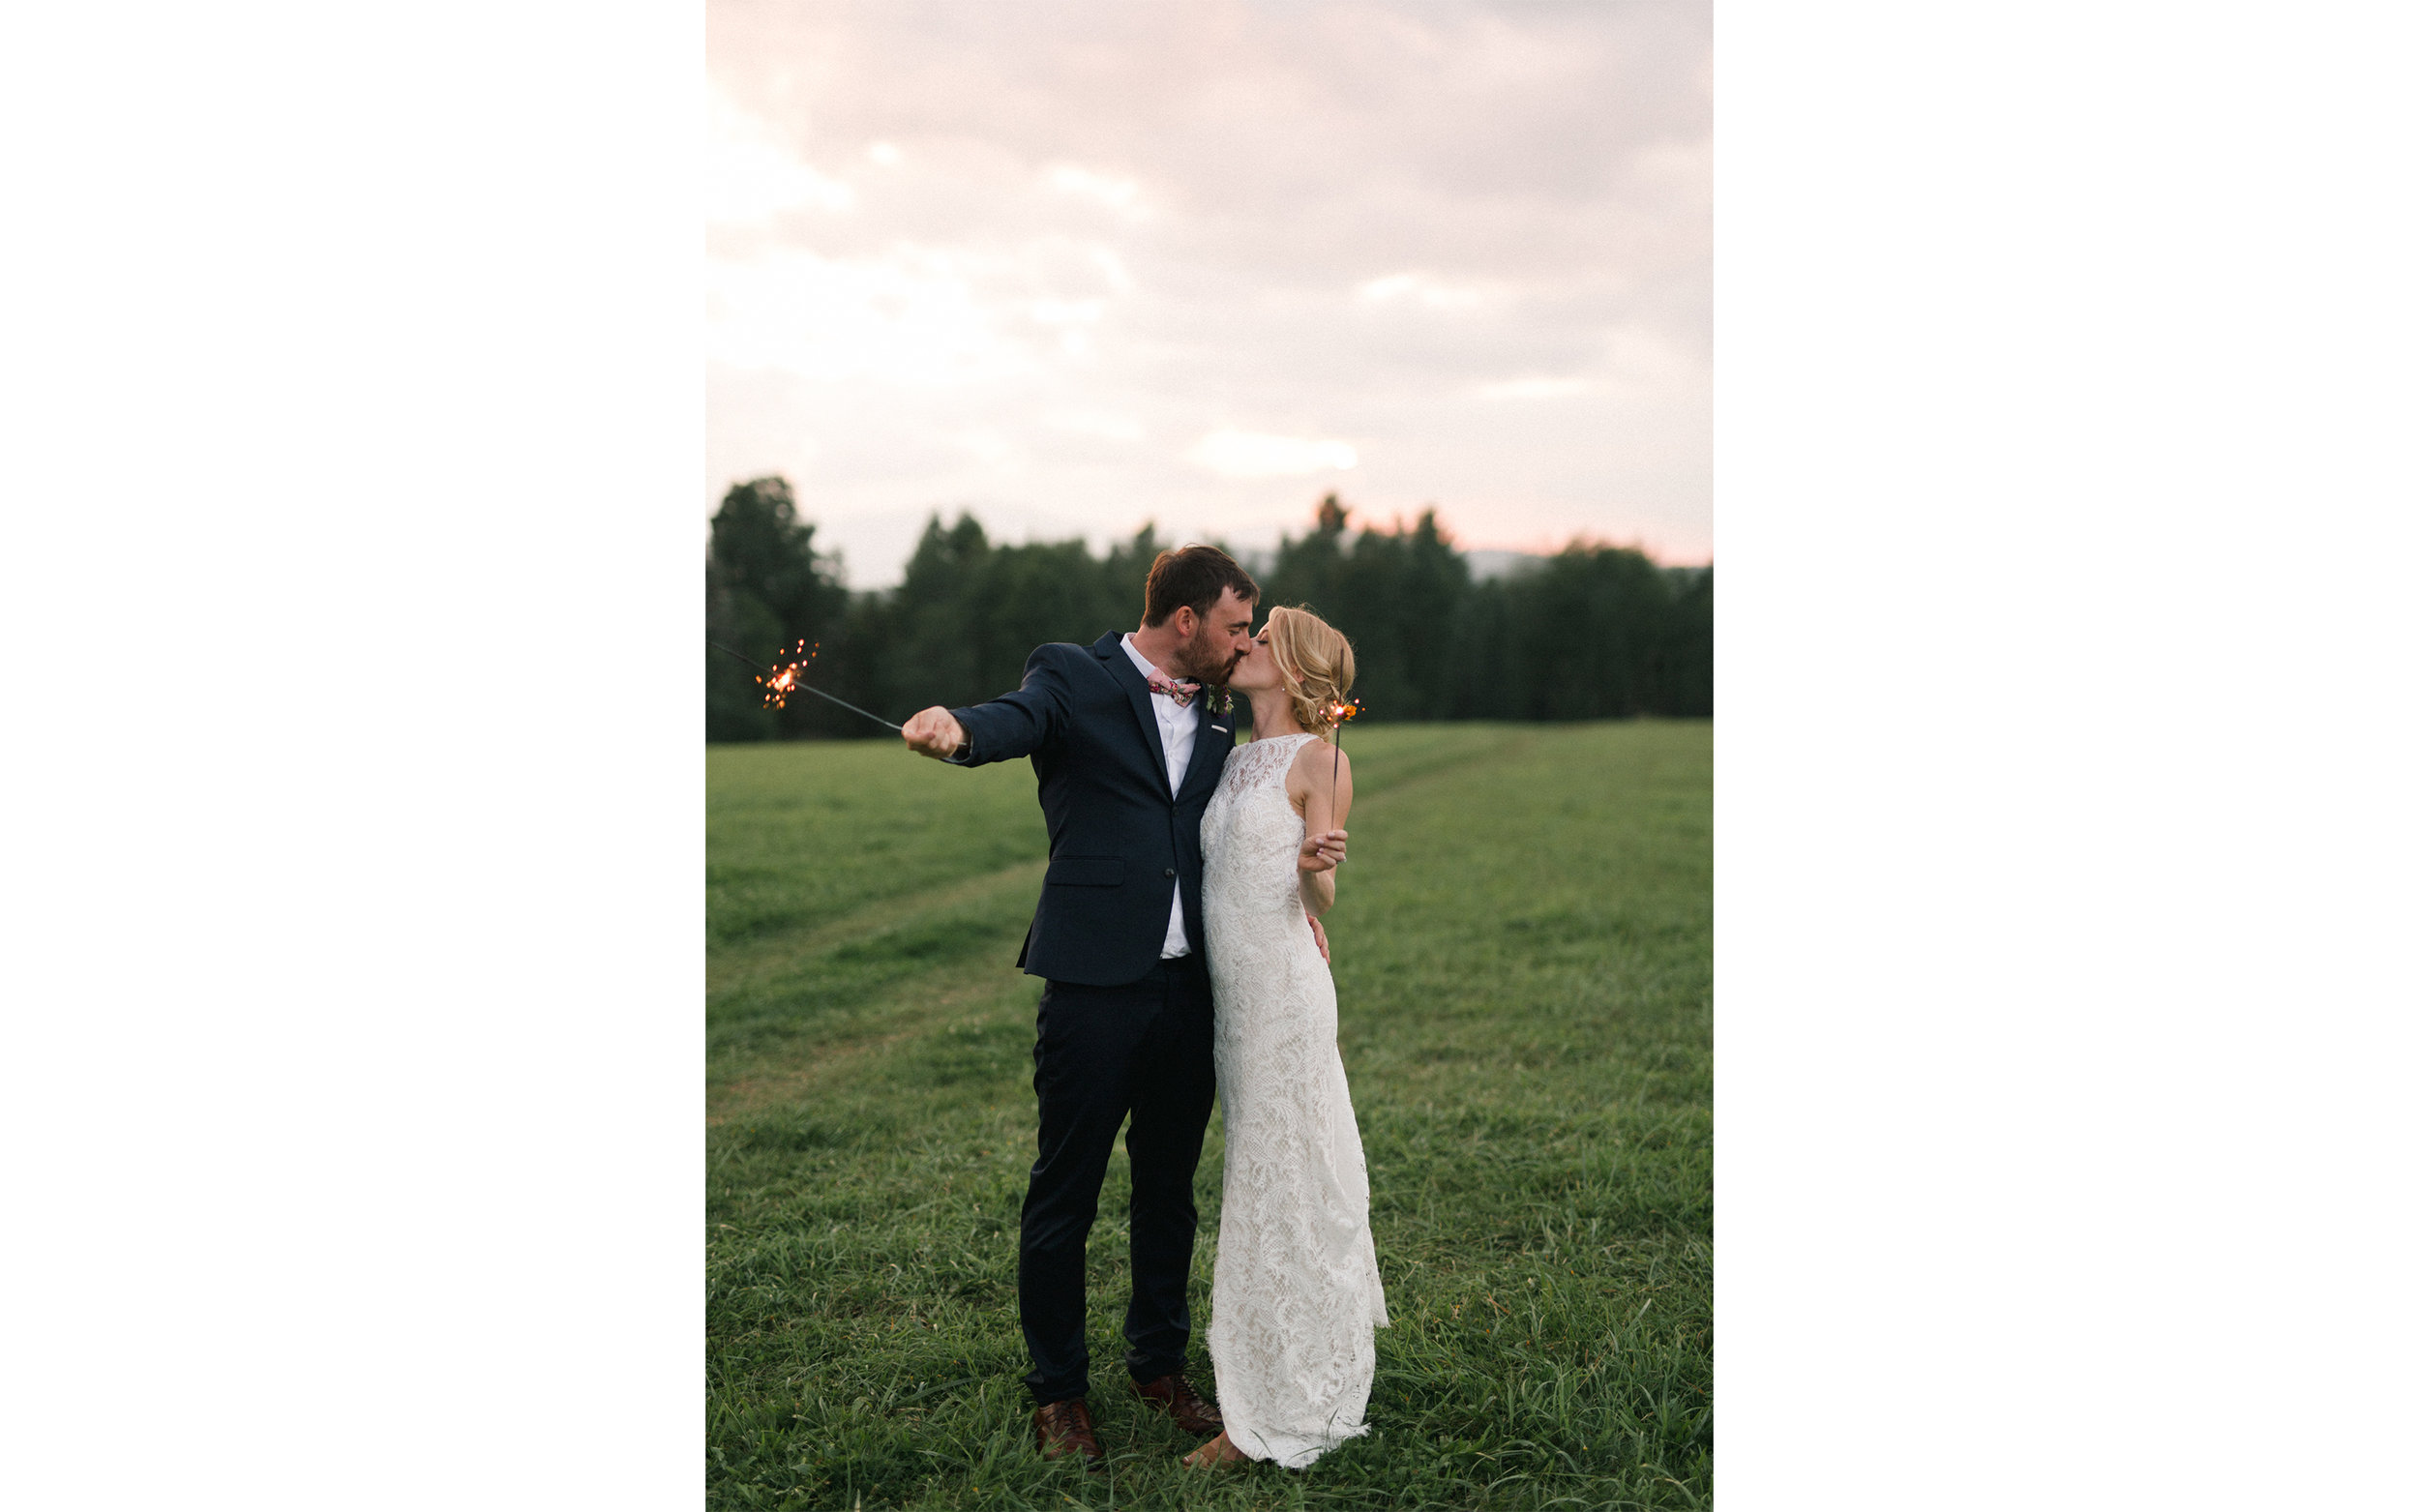 Stowe VT Farm Wedding Fine Art Wedding Photographer_Meg Haley Photographs_059.jpg